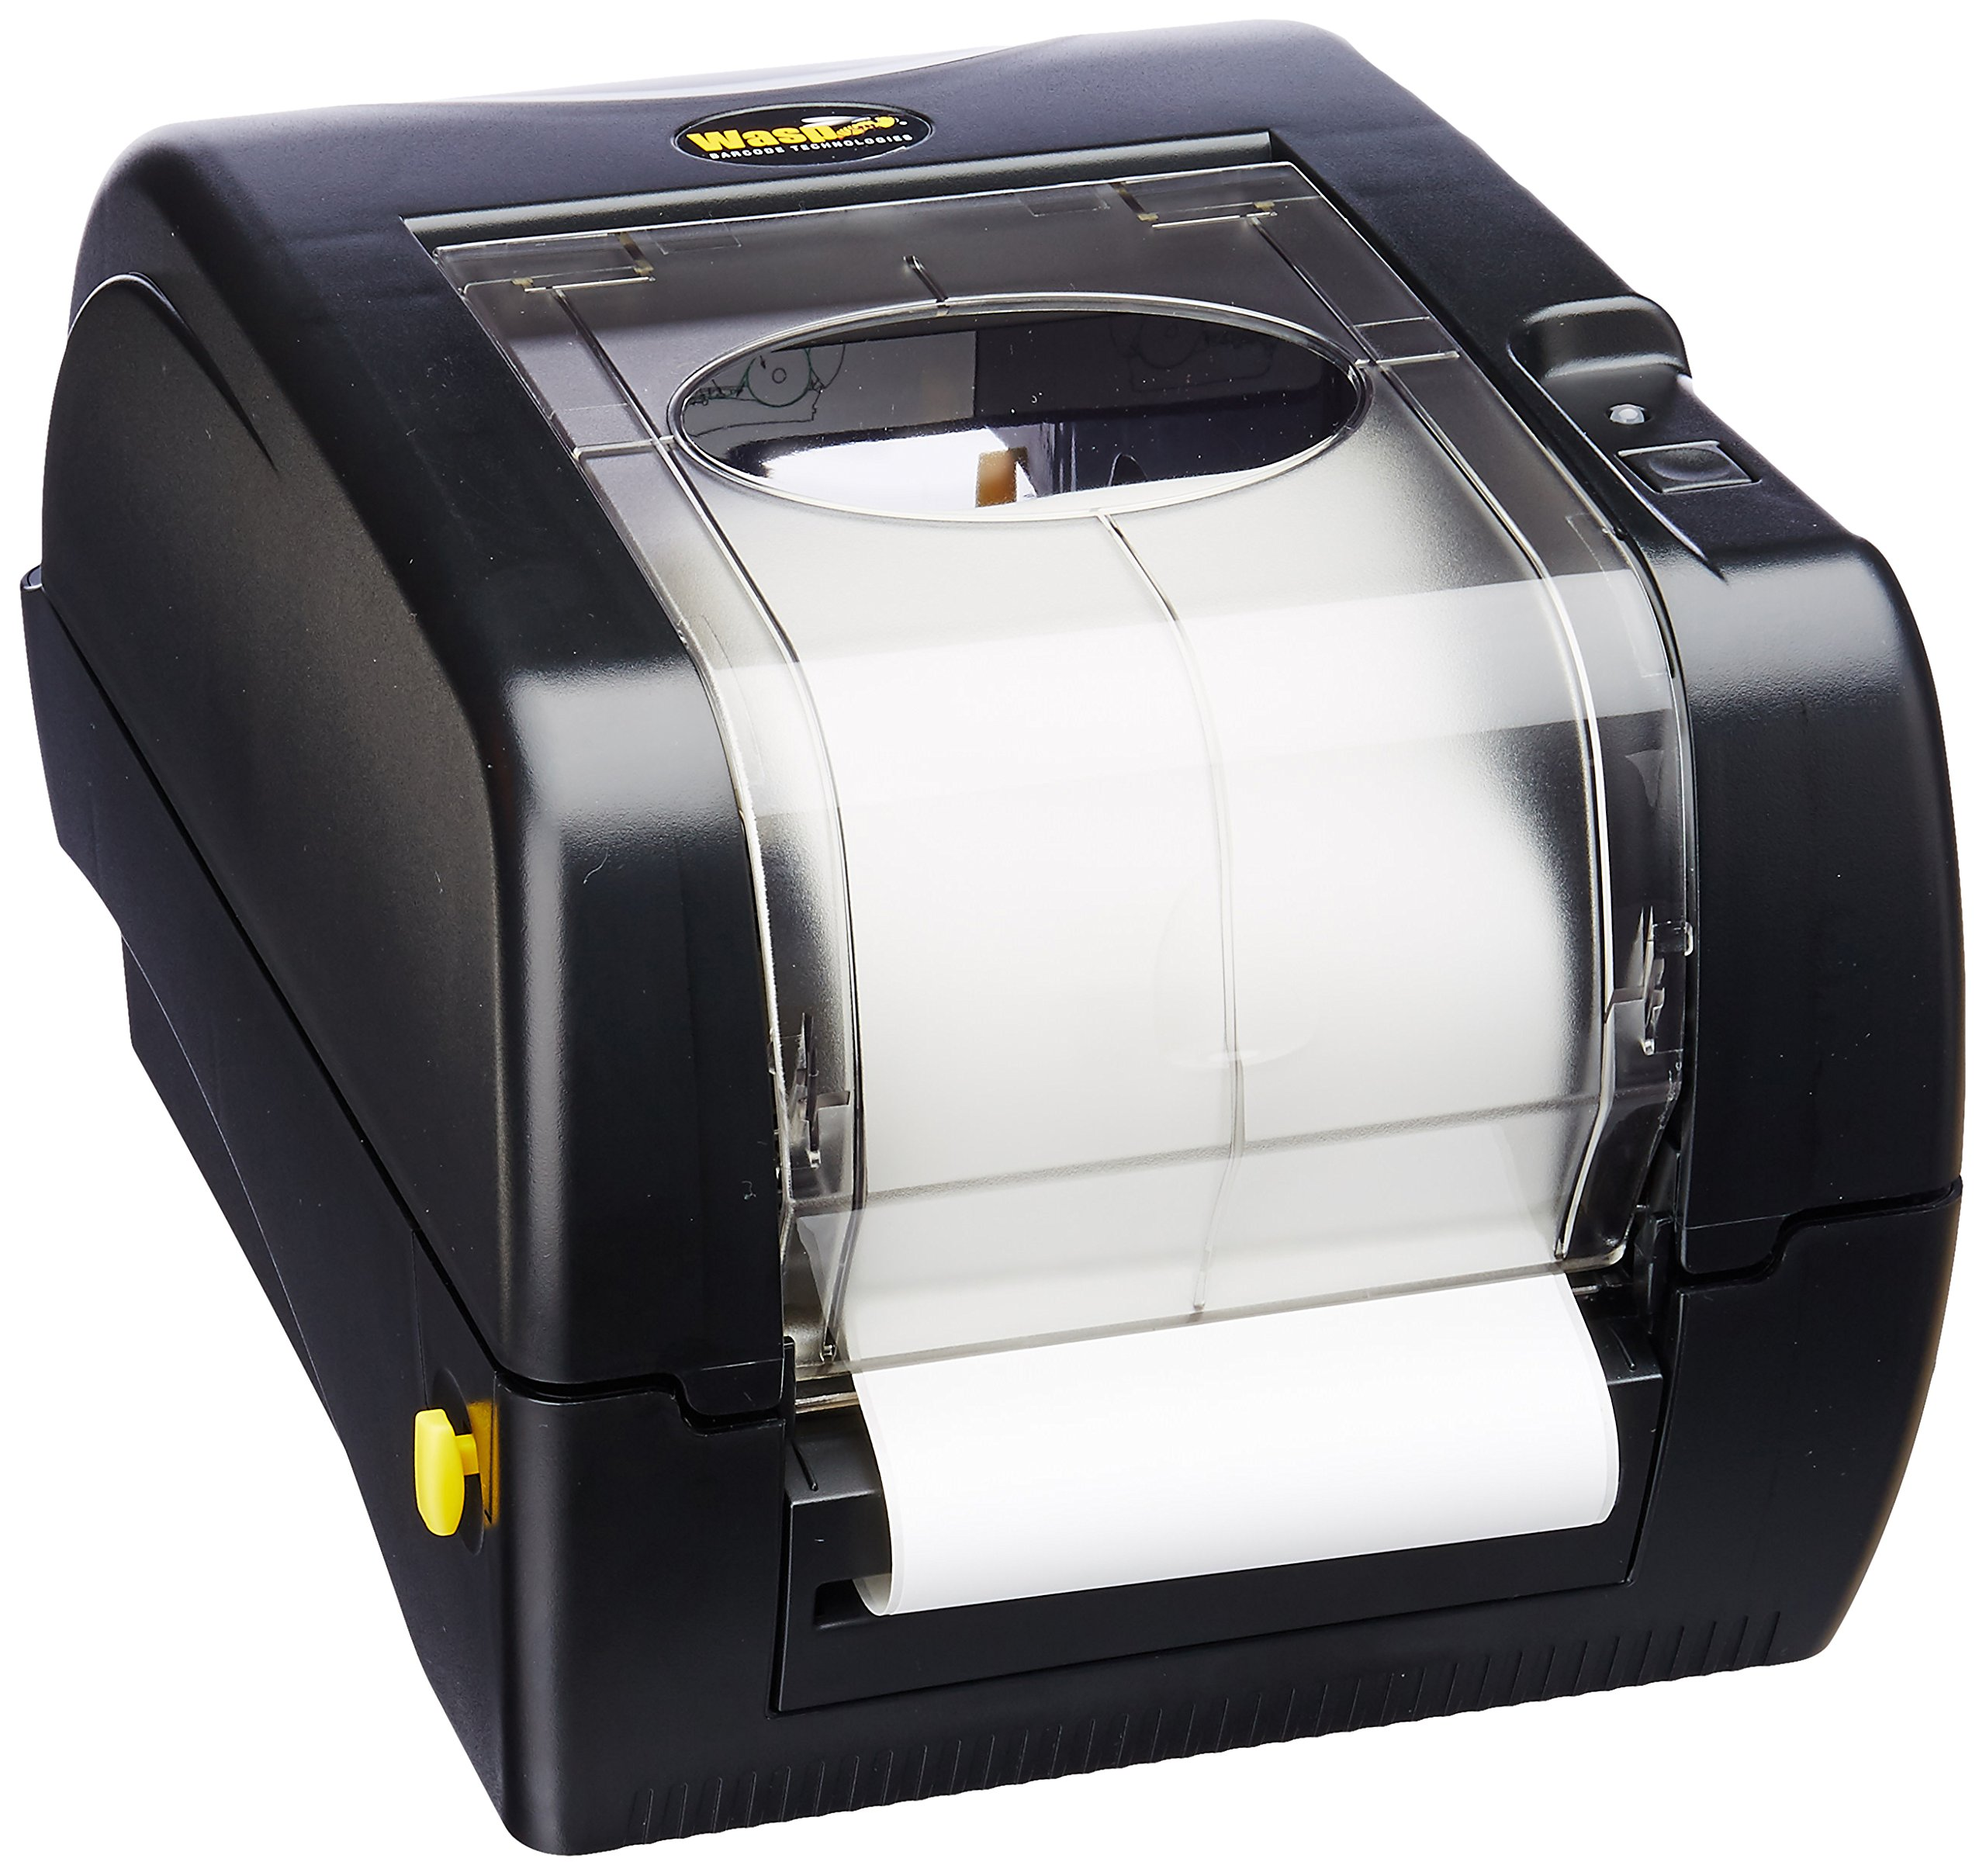 Wasp WPL305 Monochrome Direct Thermal Label Printer with Reflective Media Sensor, 5 in/s Print Speed, 203 dpi Print Resolution, 4.25'' Print Width, 110/220V AC by Wasp Technologies